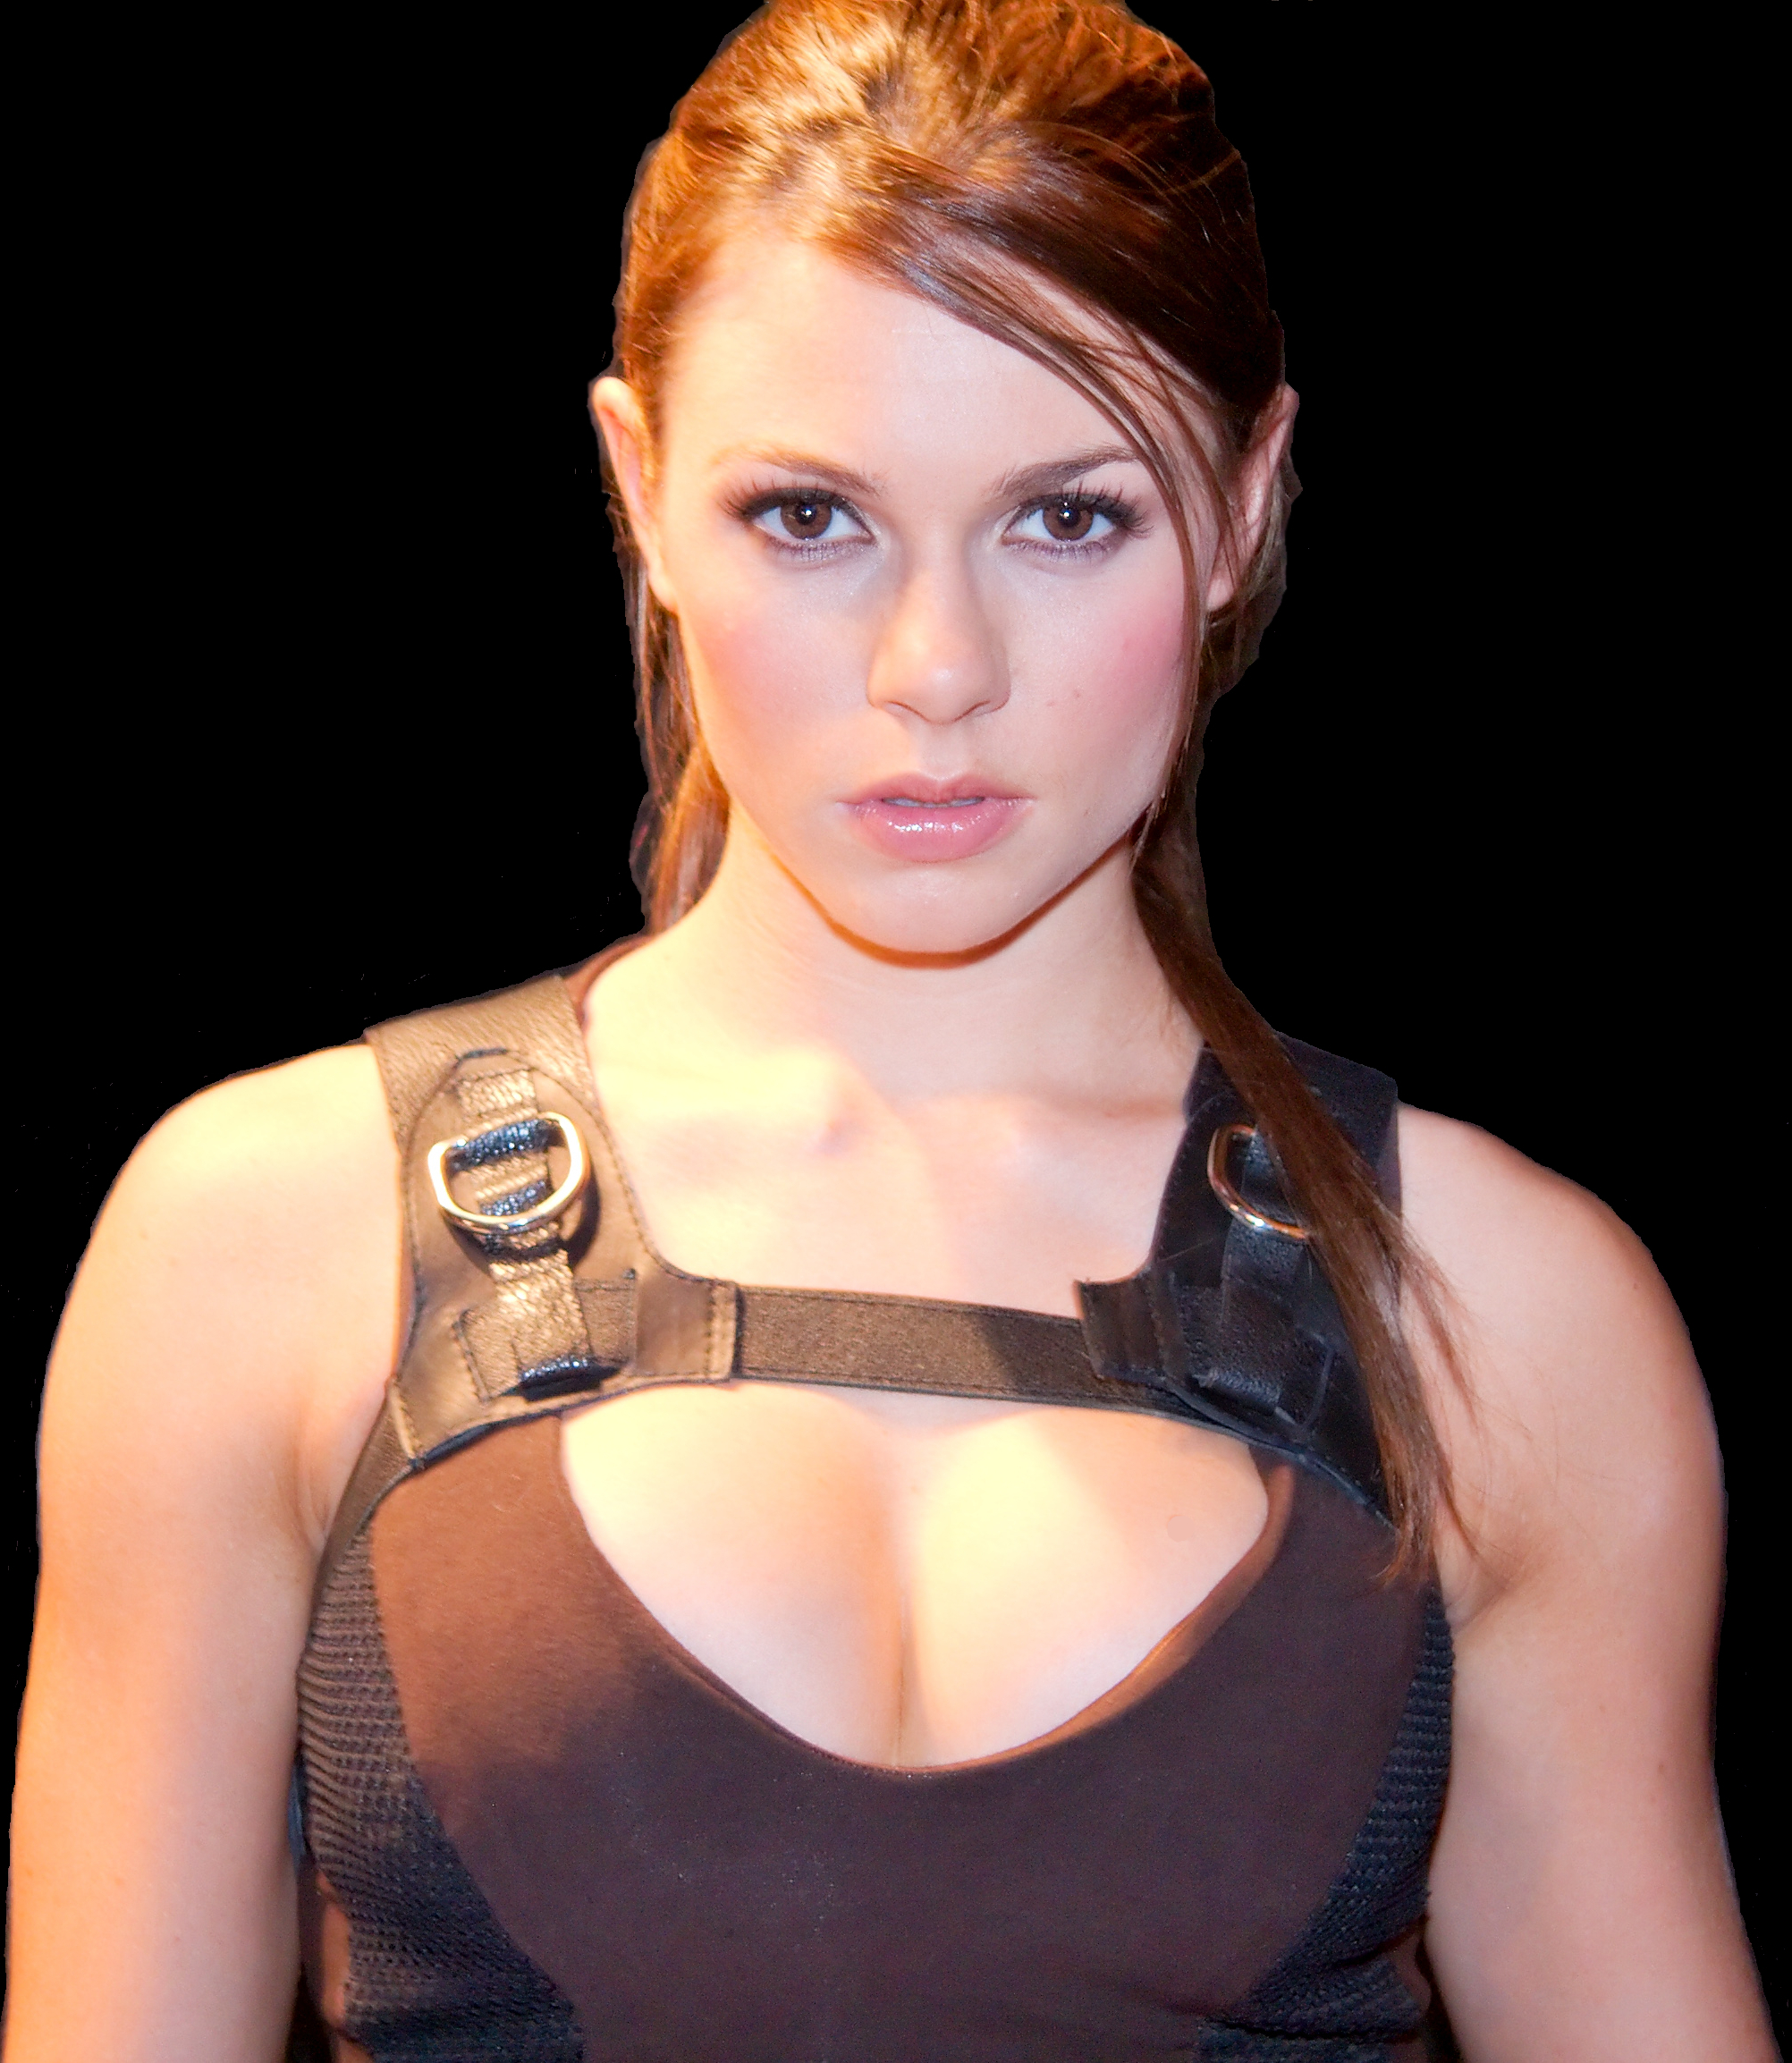 Lara Croft - Wikipedia, the free encyclopediayoung models video